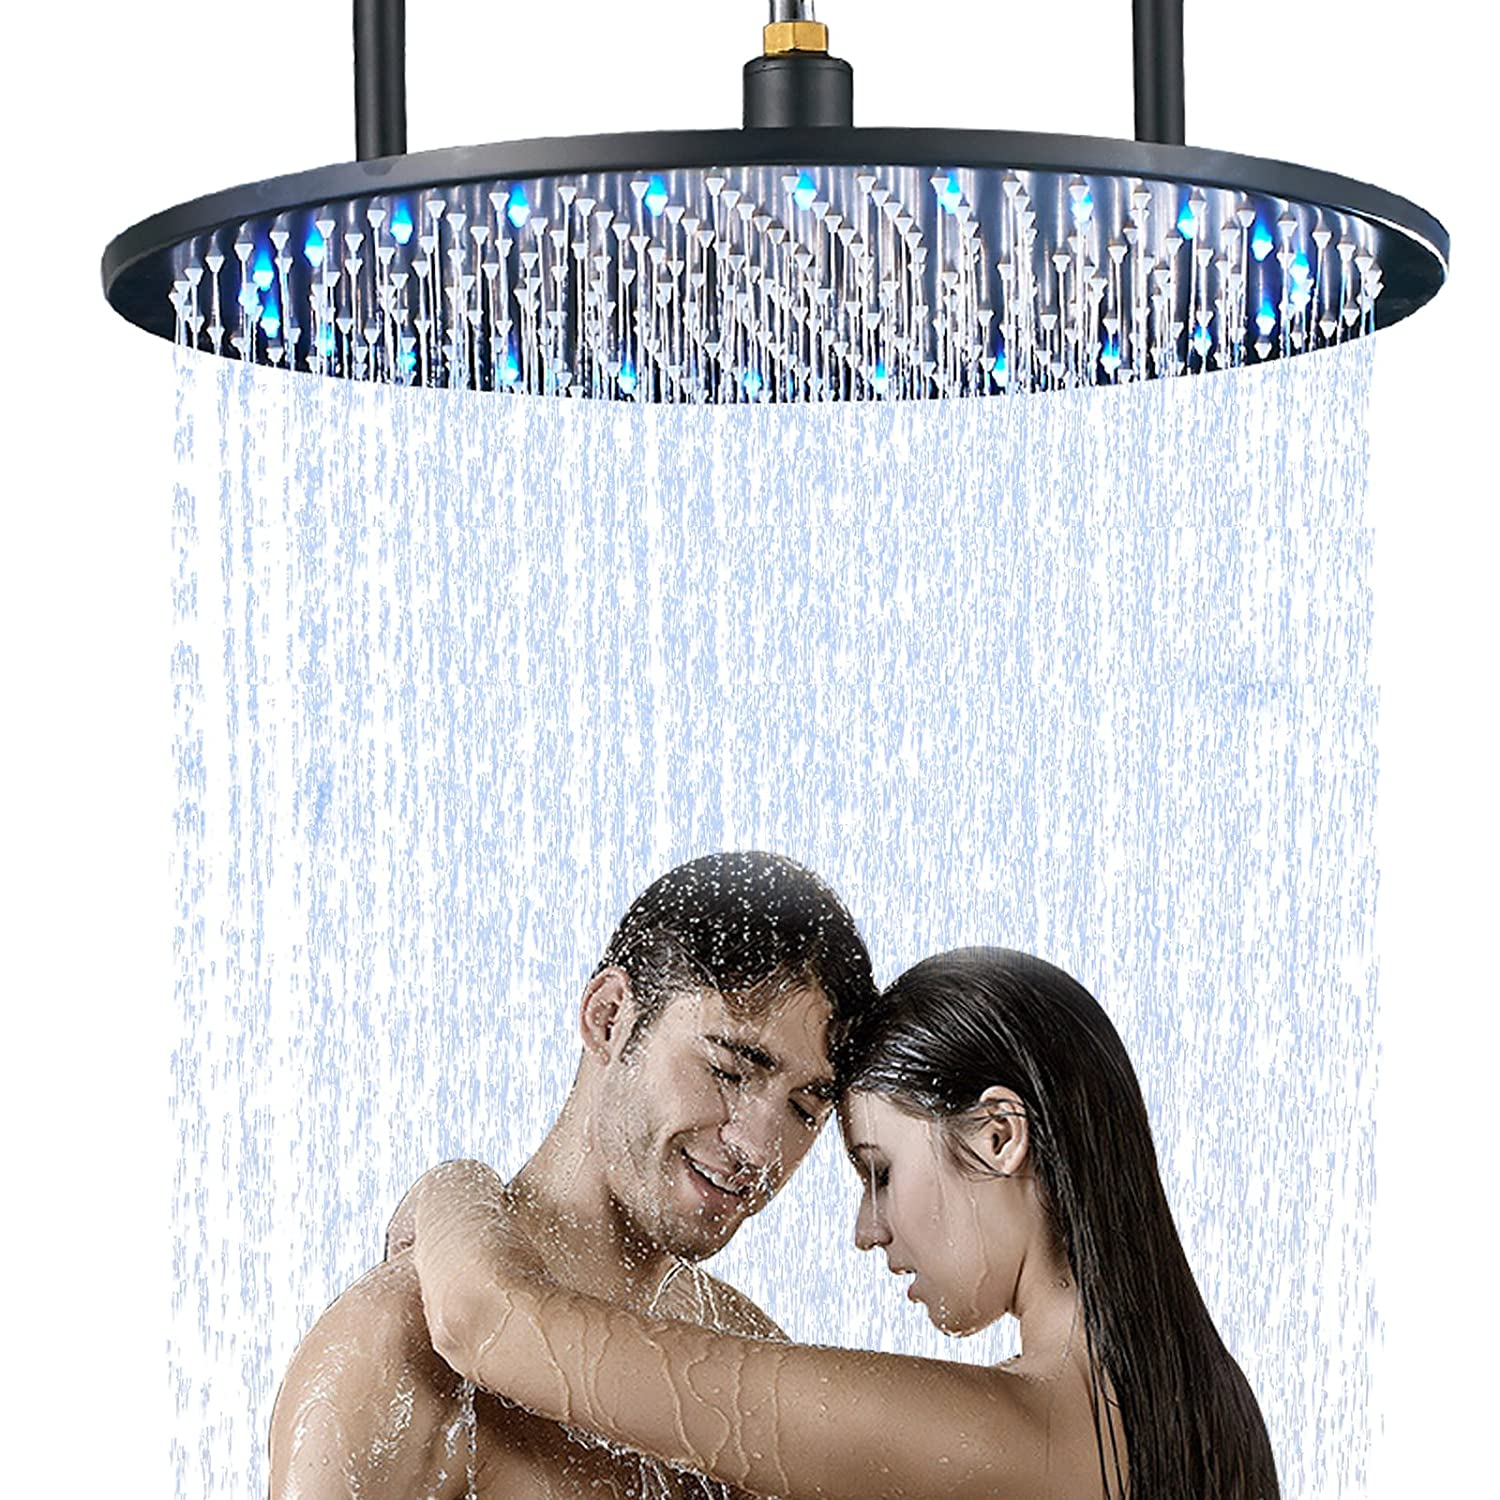 Senlesen Bathroom 20-inch Round LED Light Rainfall Top Shower Head Ceiling Mounted Black Color